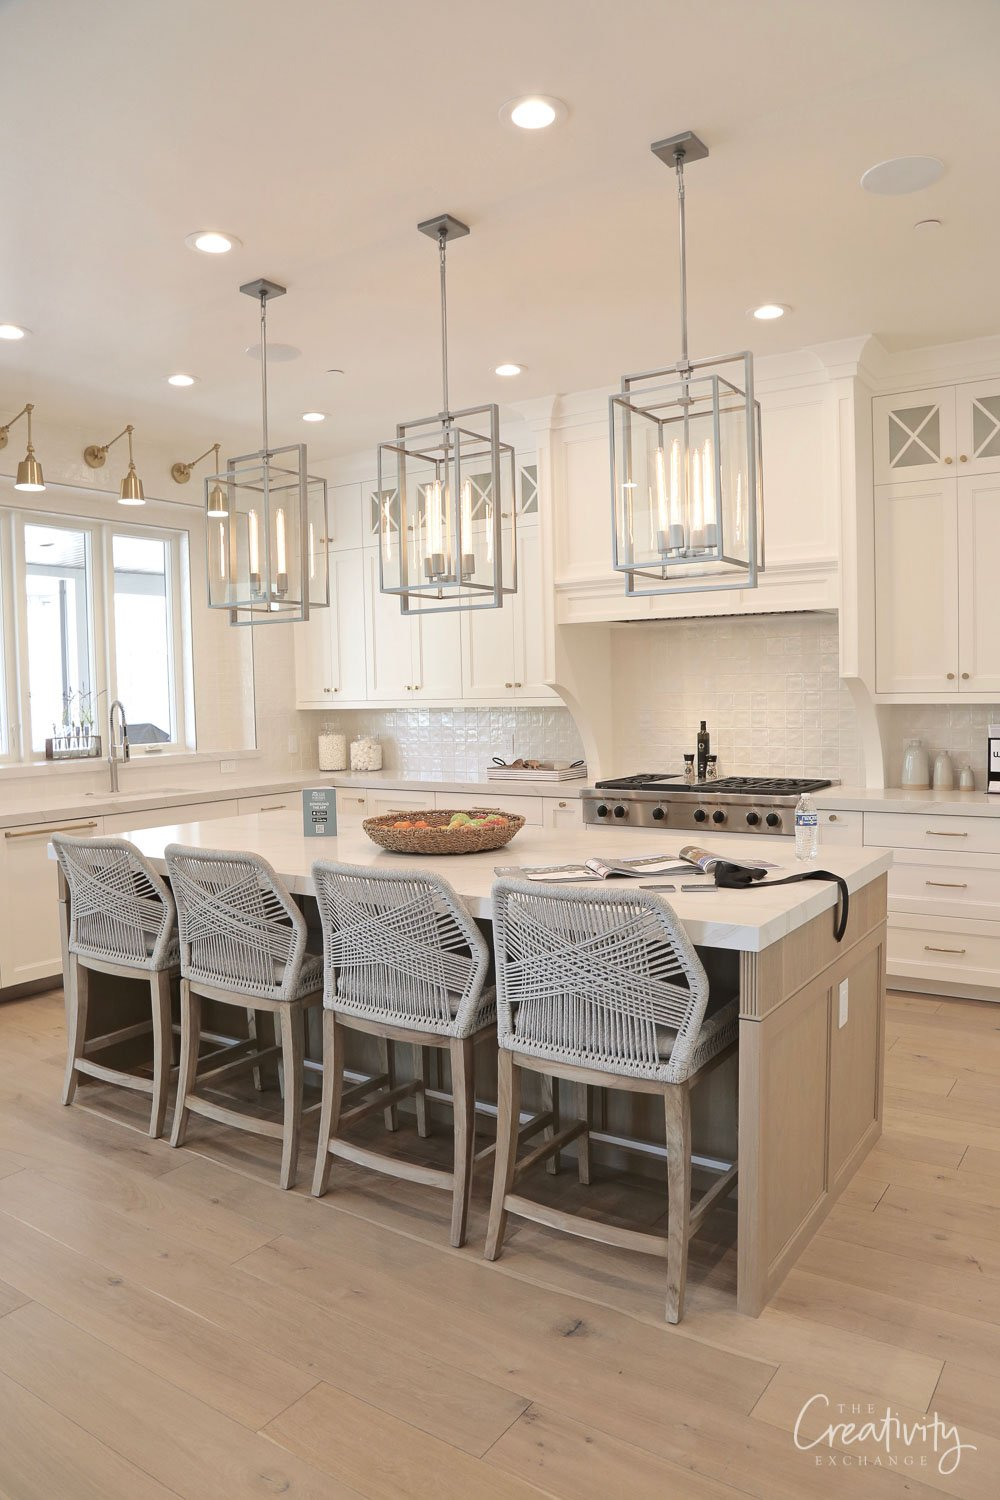 Kitchen cabinets painted with Benjamin Moore White dove